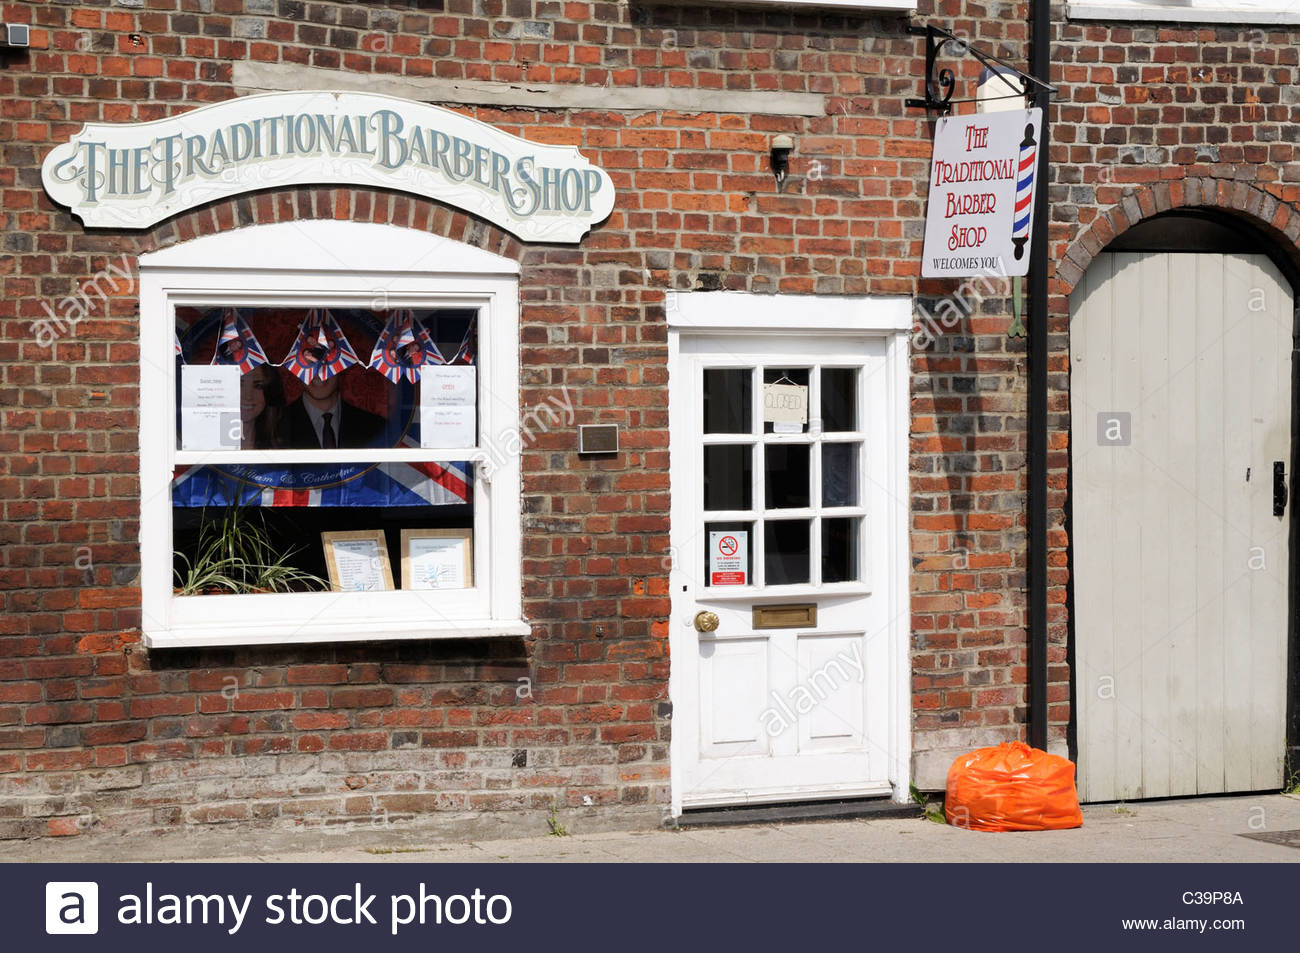 Old Fashioned Barbers Shop Stock Photos Amp Old Fashioned